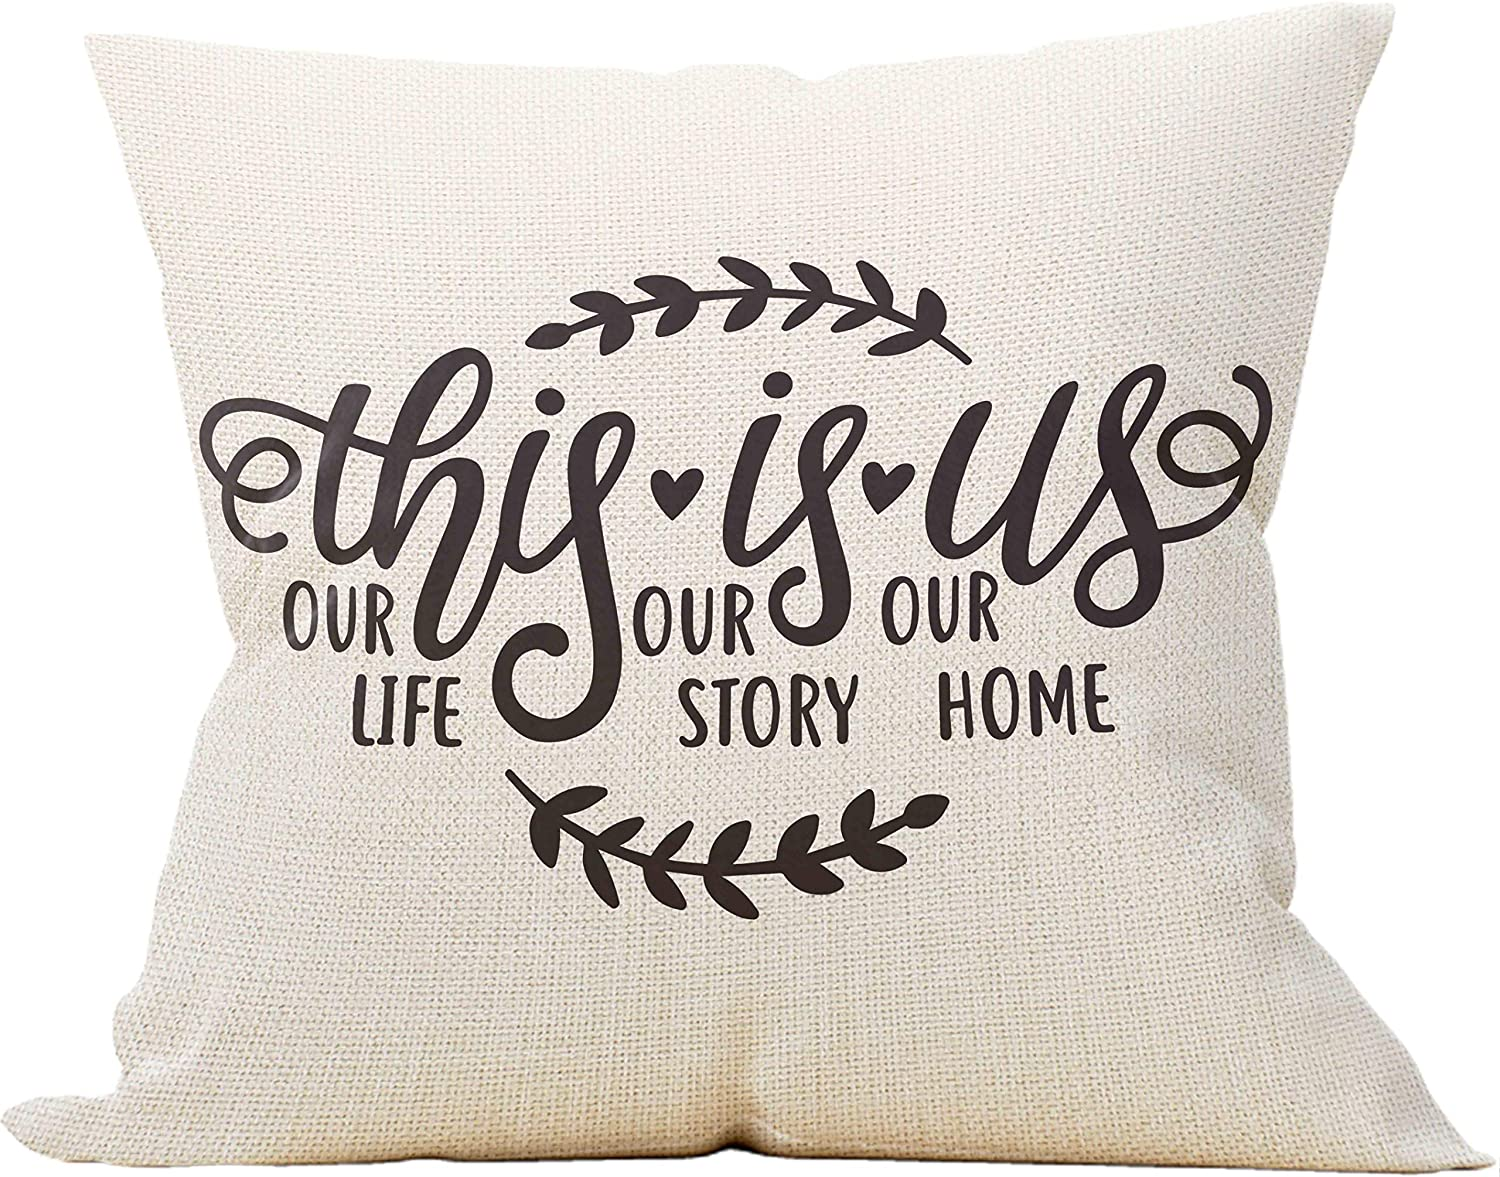 Mancheng-zi This is Us, Our Life, Our Story, Our Home Throw Pillow Case, Wedding Gifts for Couple, Engagement Gift, 18 x 18 Inch Decorative Cotton Linen Cushion Cover for Sofa Couch Bed